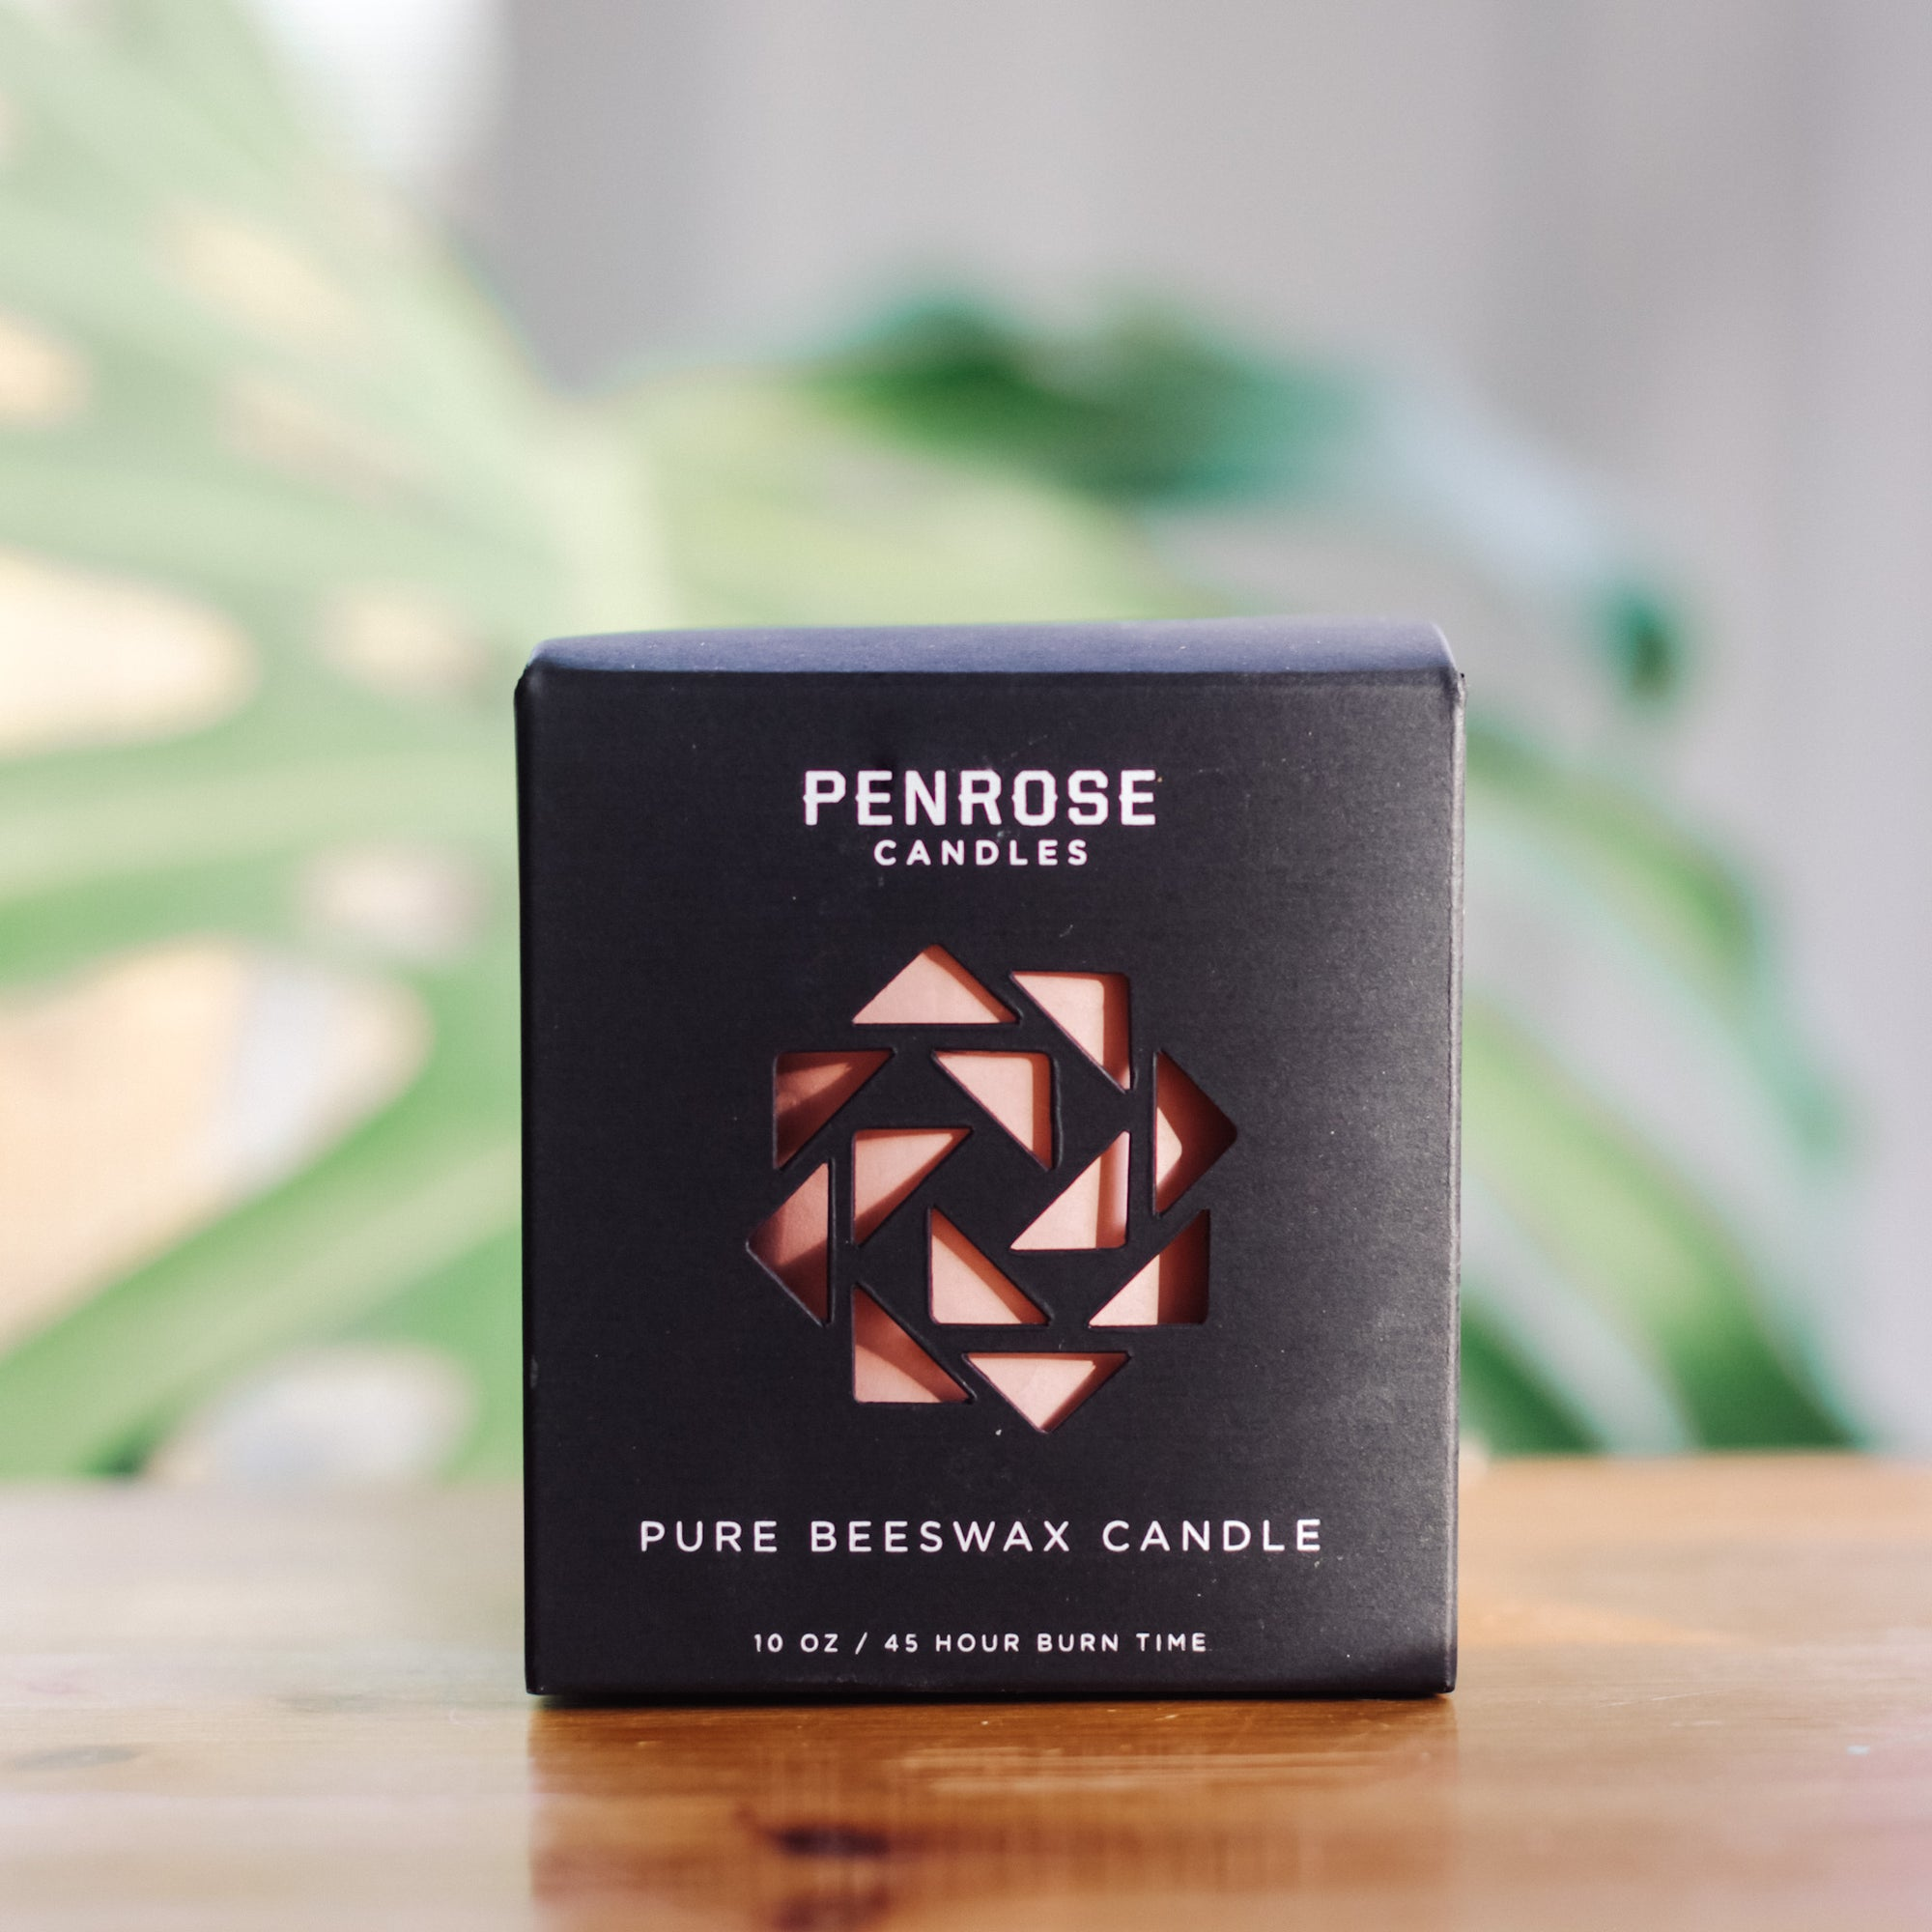 Penrose Candles